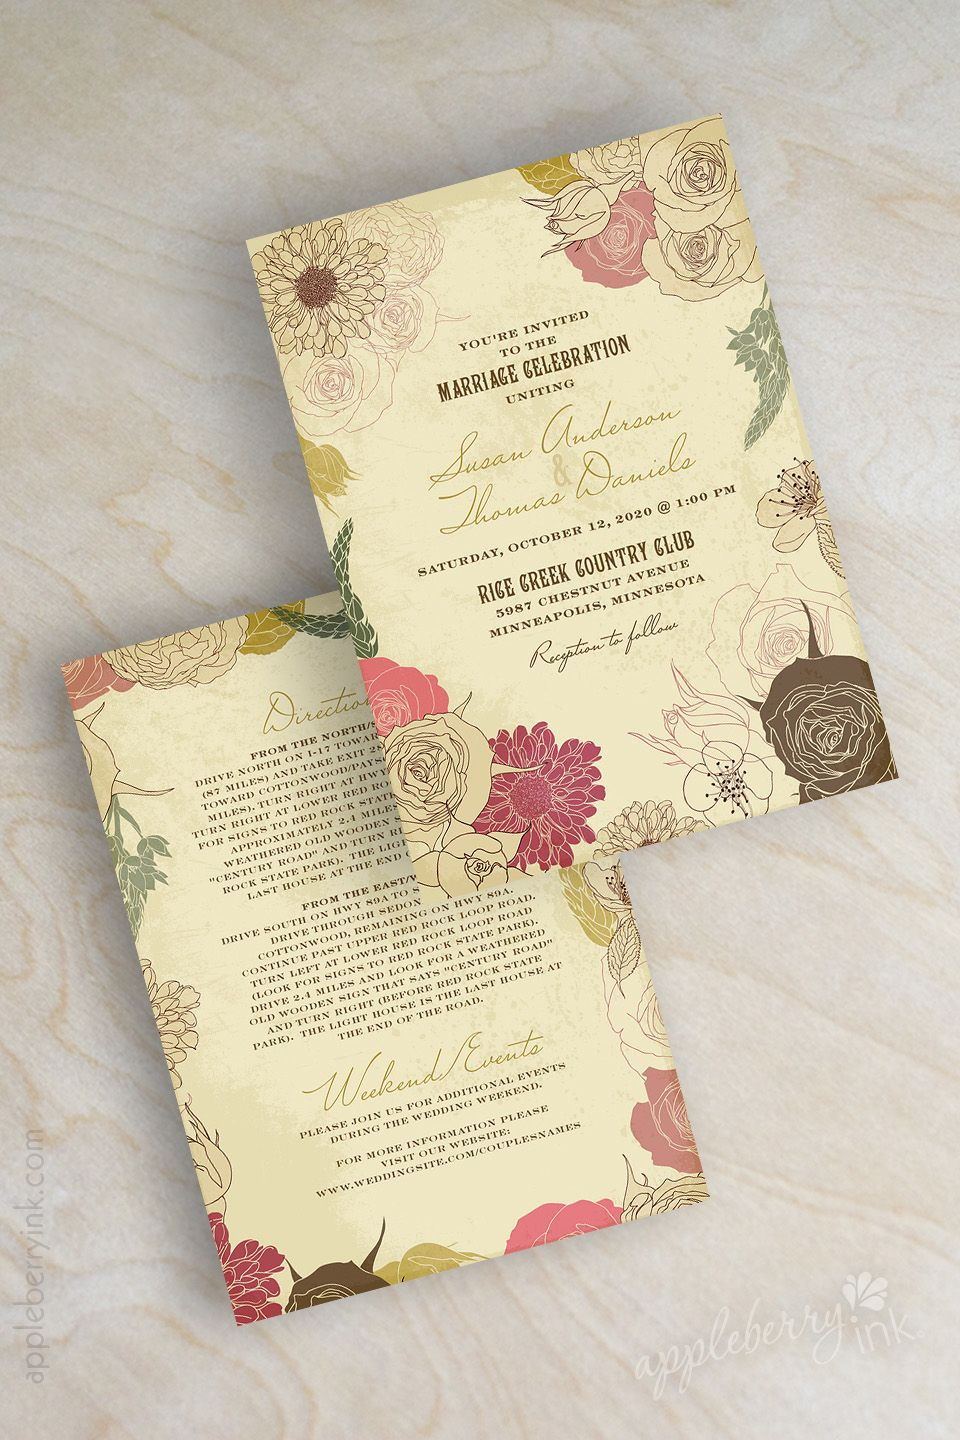 Botanical Rustic Shabby Chic Floral Garden Wedding Invitations Shown In Coral Pink Brown Neutral Colors Www Appleberryink Com